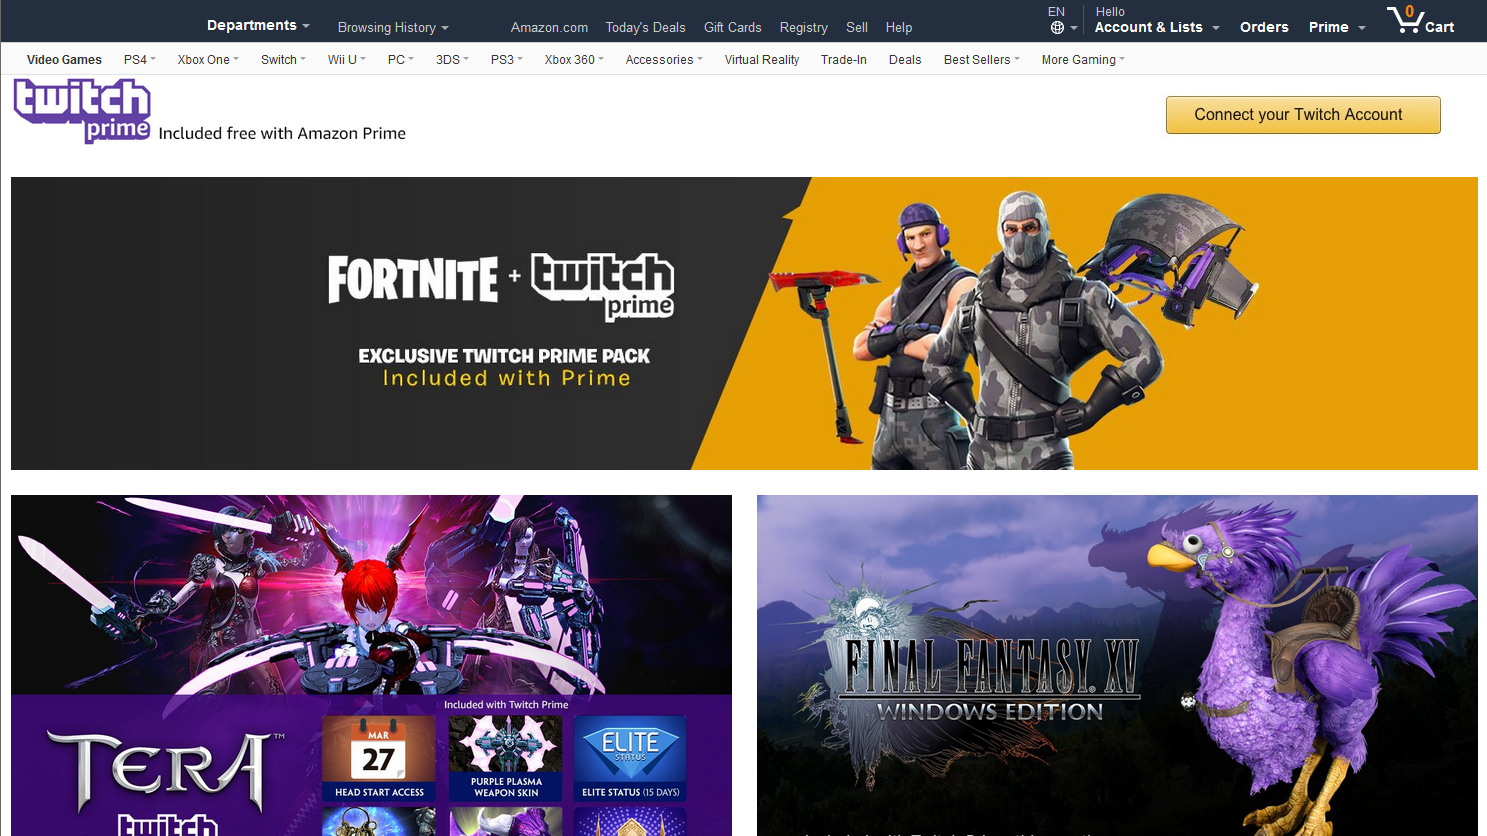 Twitch Prime Perks and Benefits